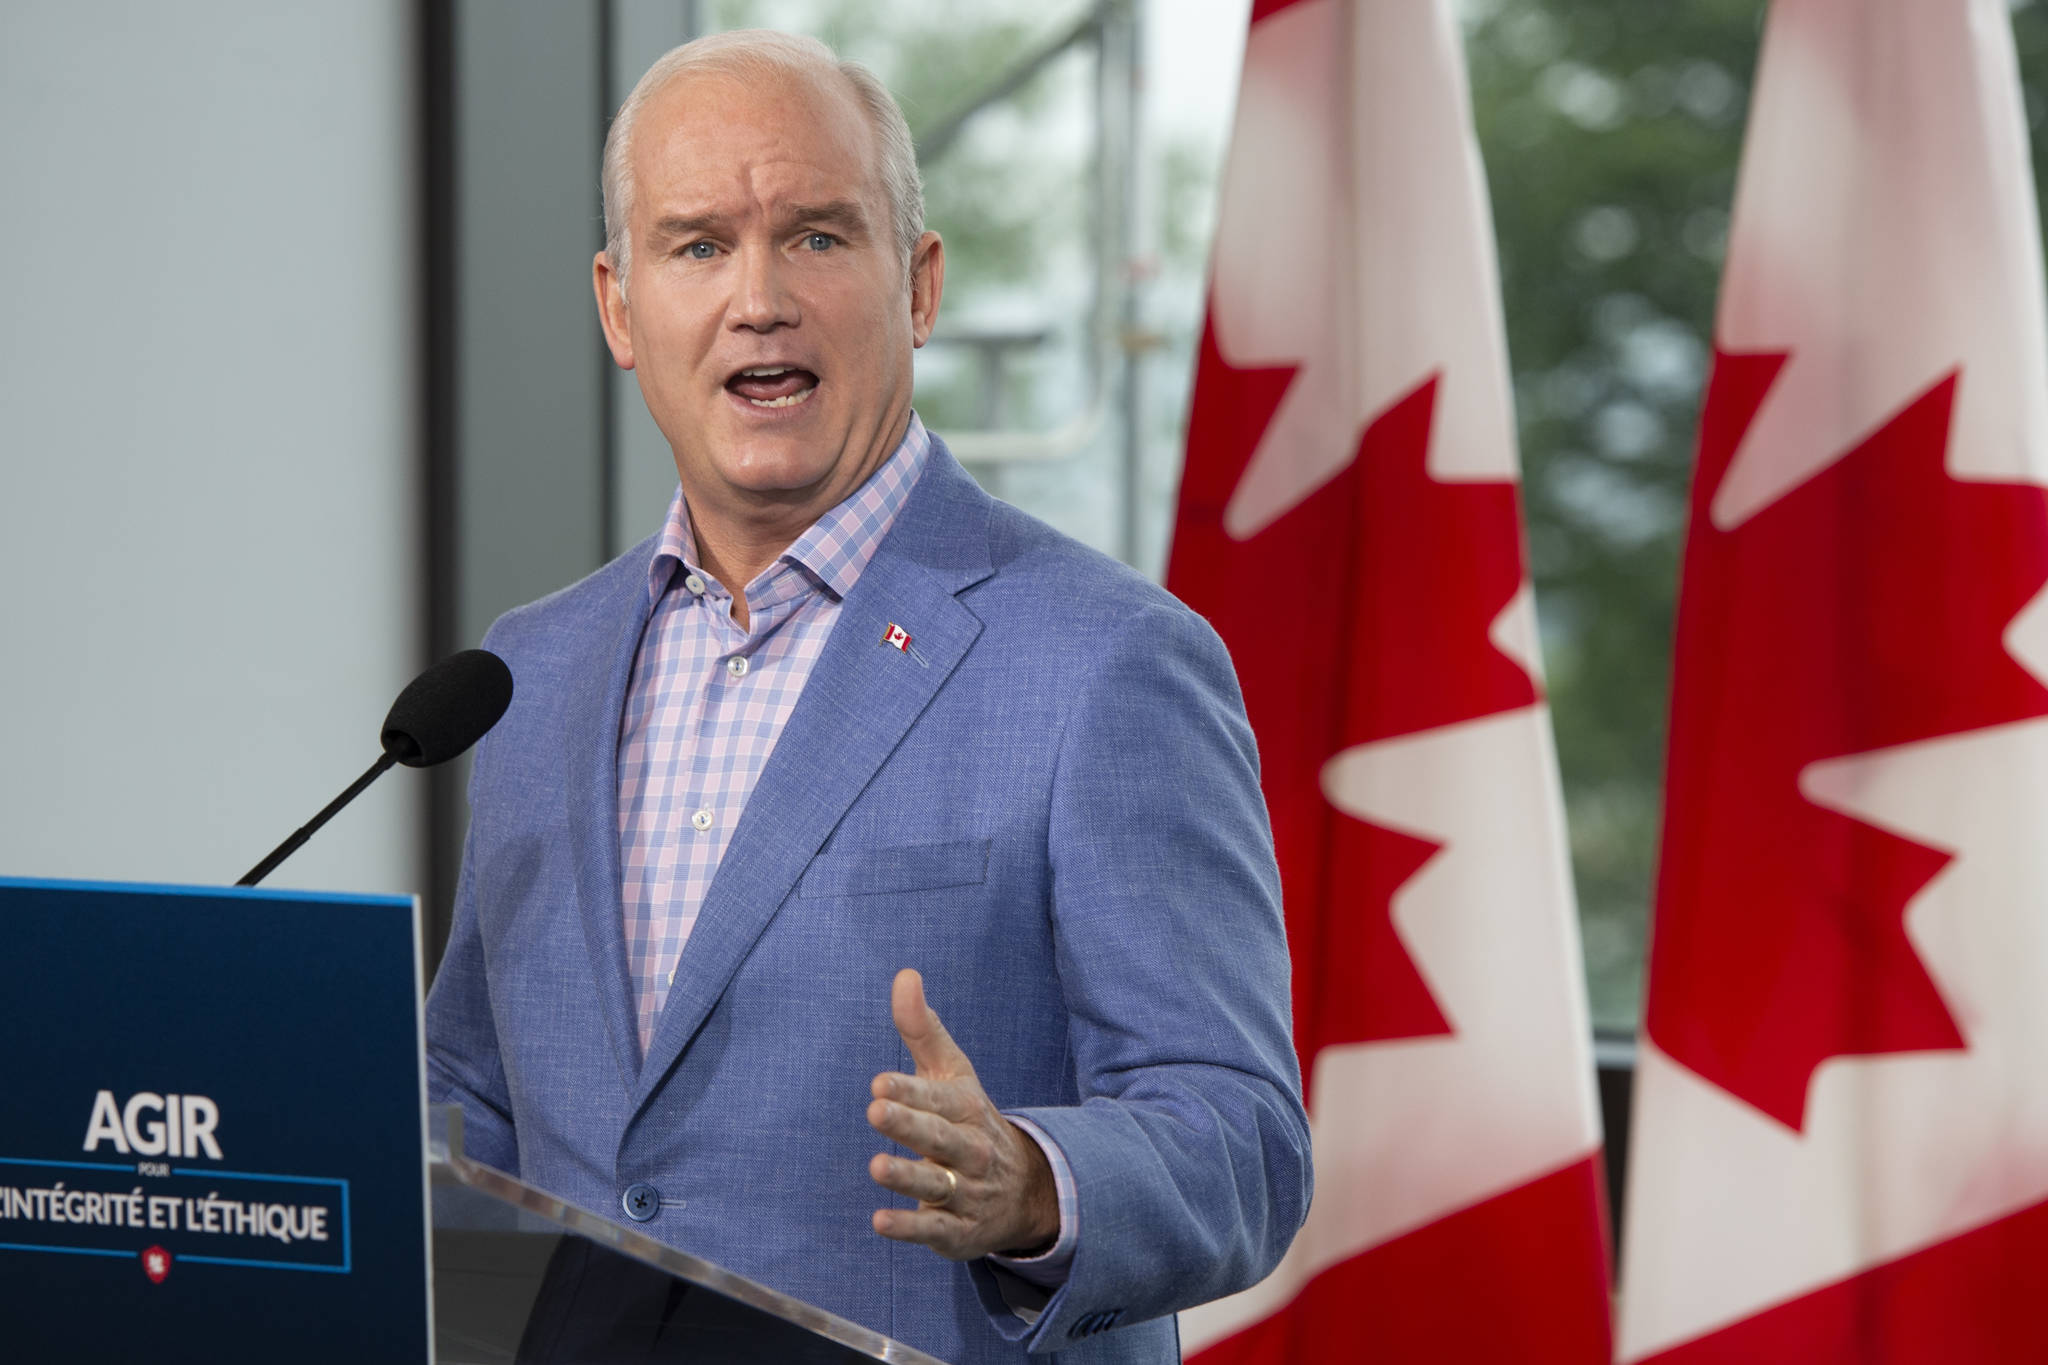 Conservative Leader Erin O'Toole speaks to the media Wednesday, August 18, 2021 in Quebec City. Canadians will vote in a federal election Sept. 20th.THE CANADIAN PRESS/Ryan Remiorz